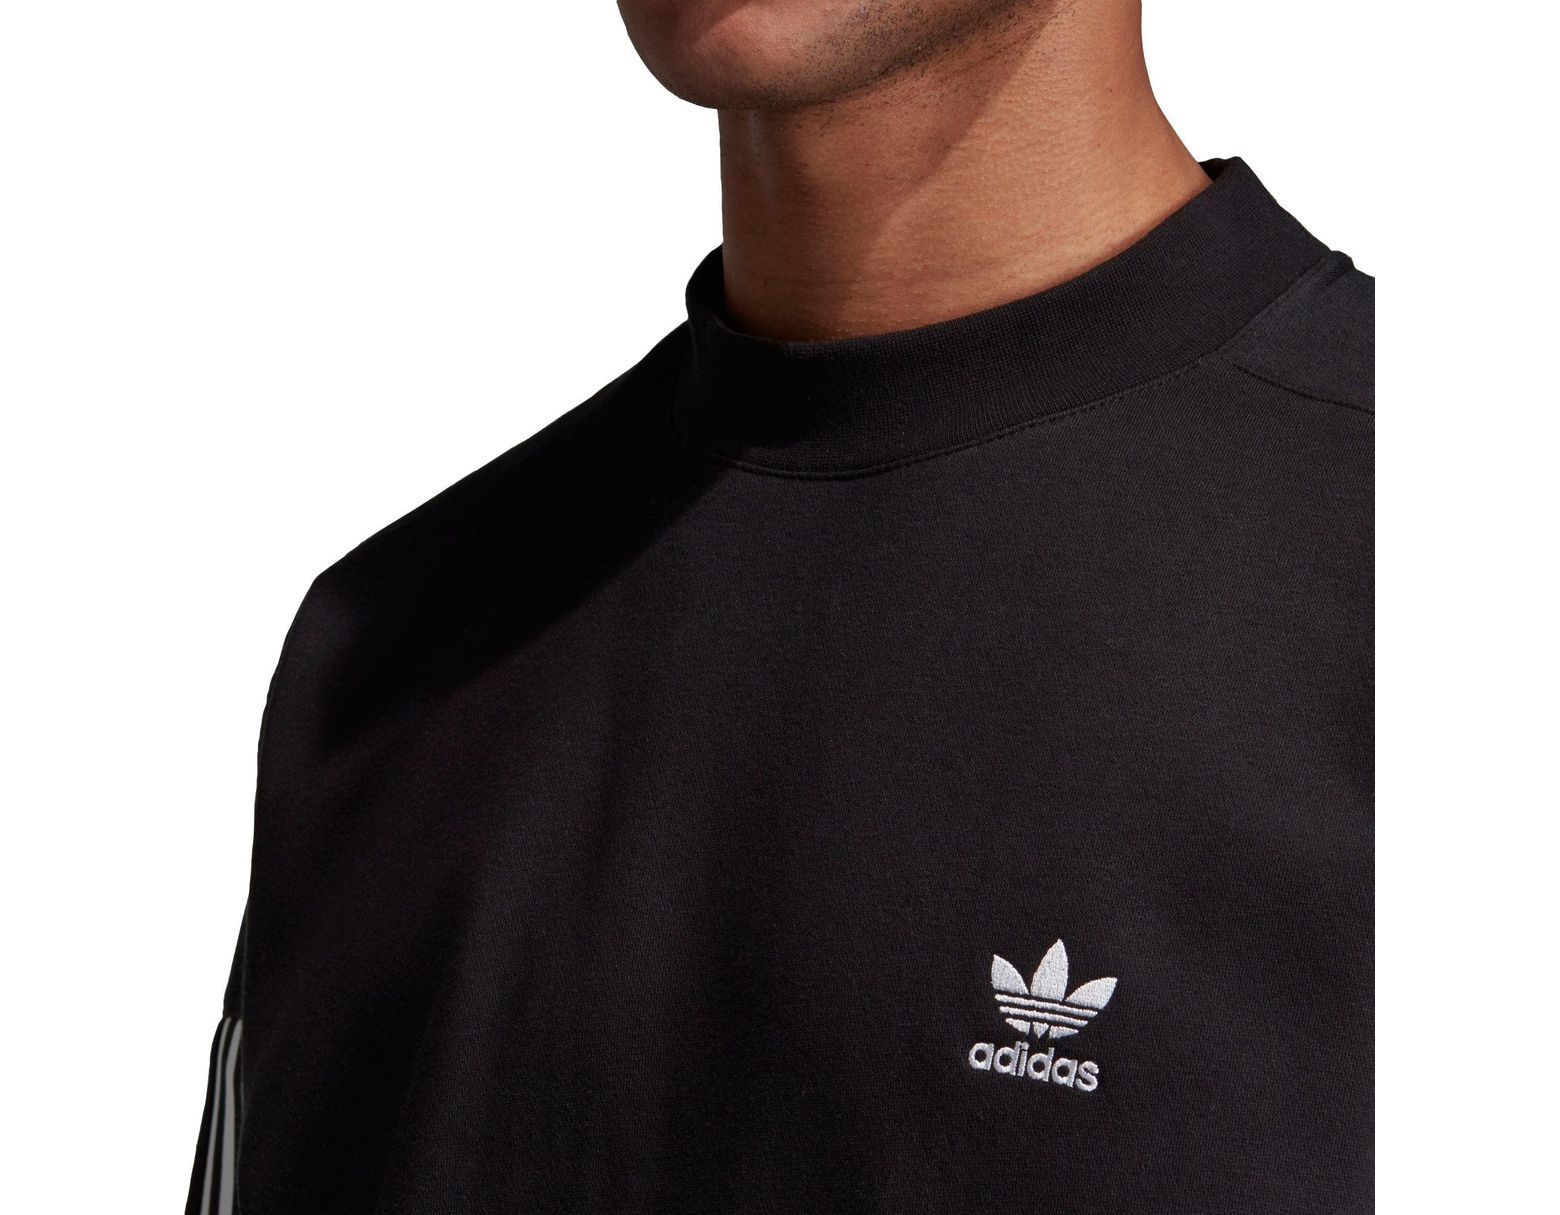 Adidas Sweatshirt Black In Men Crewneck Originals Tech For Lyst CxdBroe